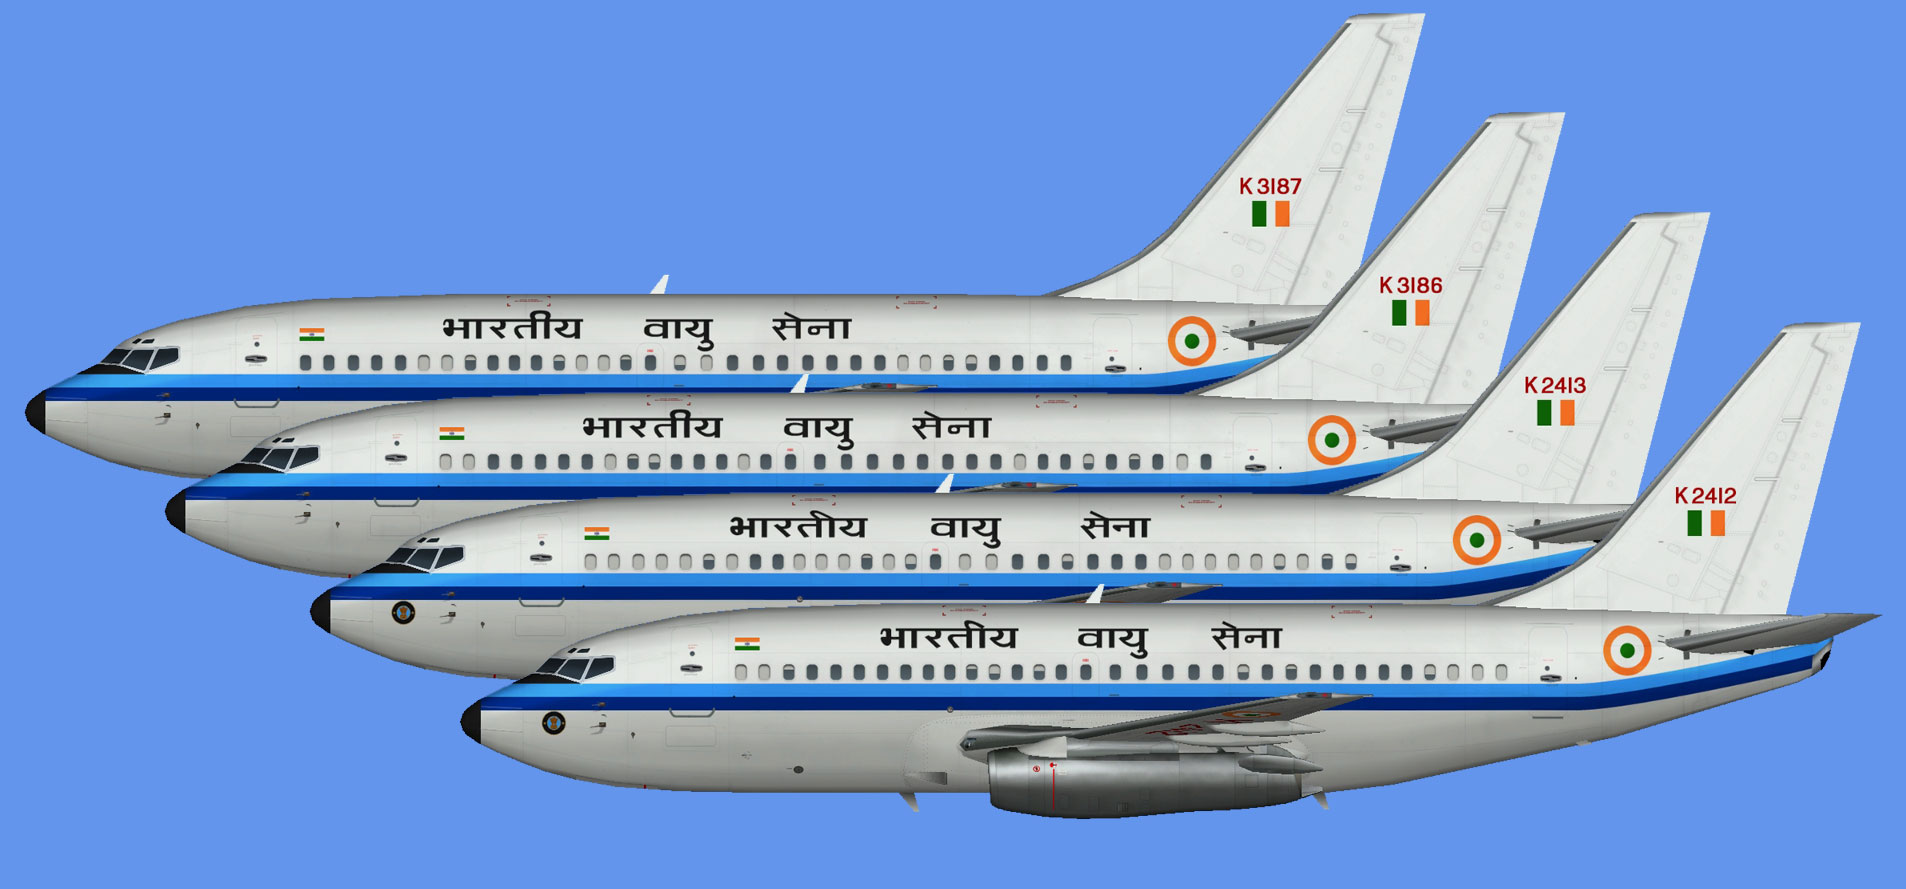 Indian Air Force Boeing 737-200